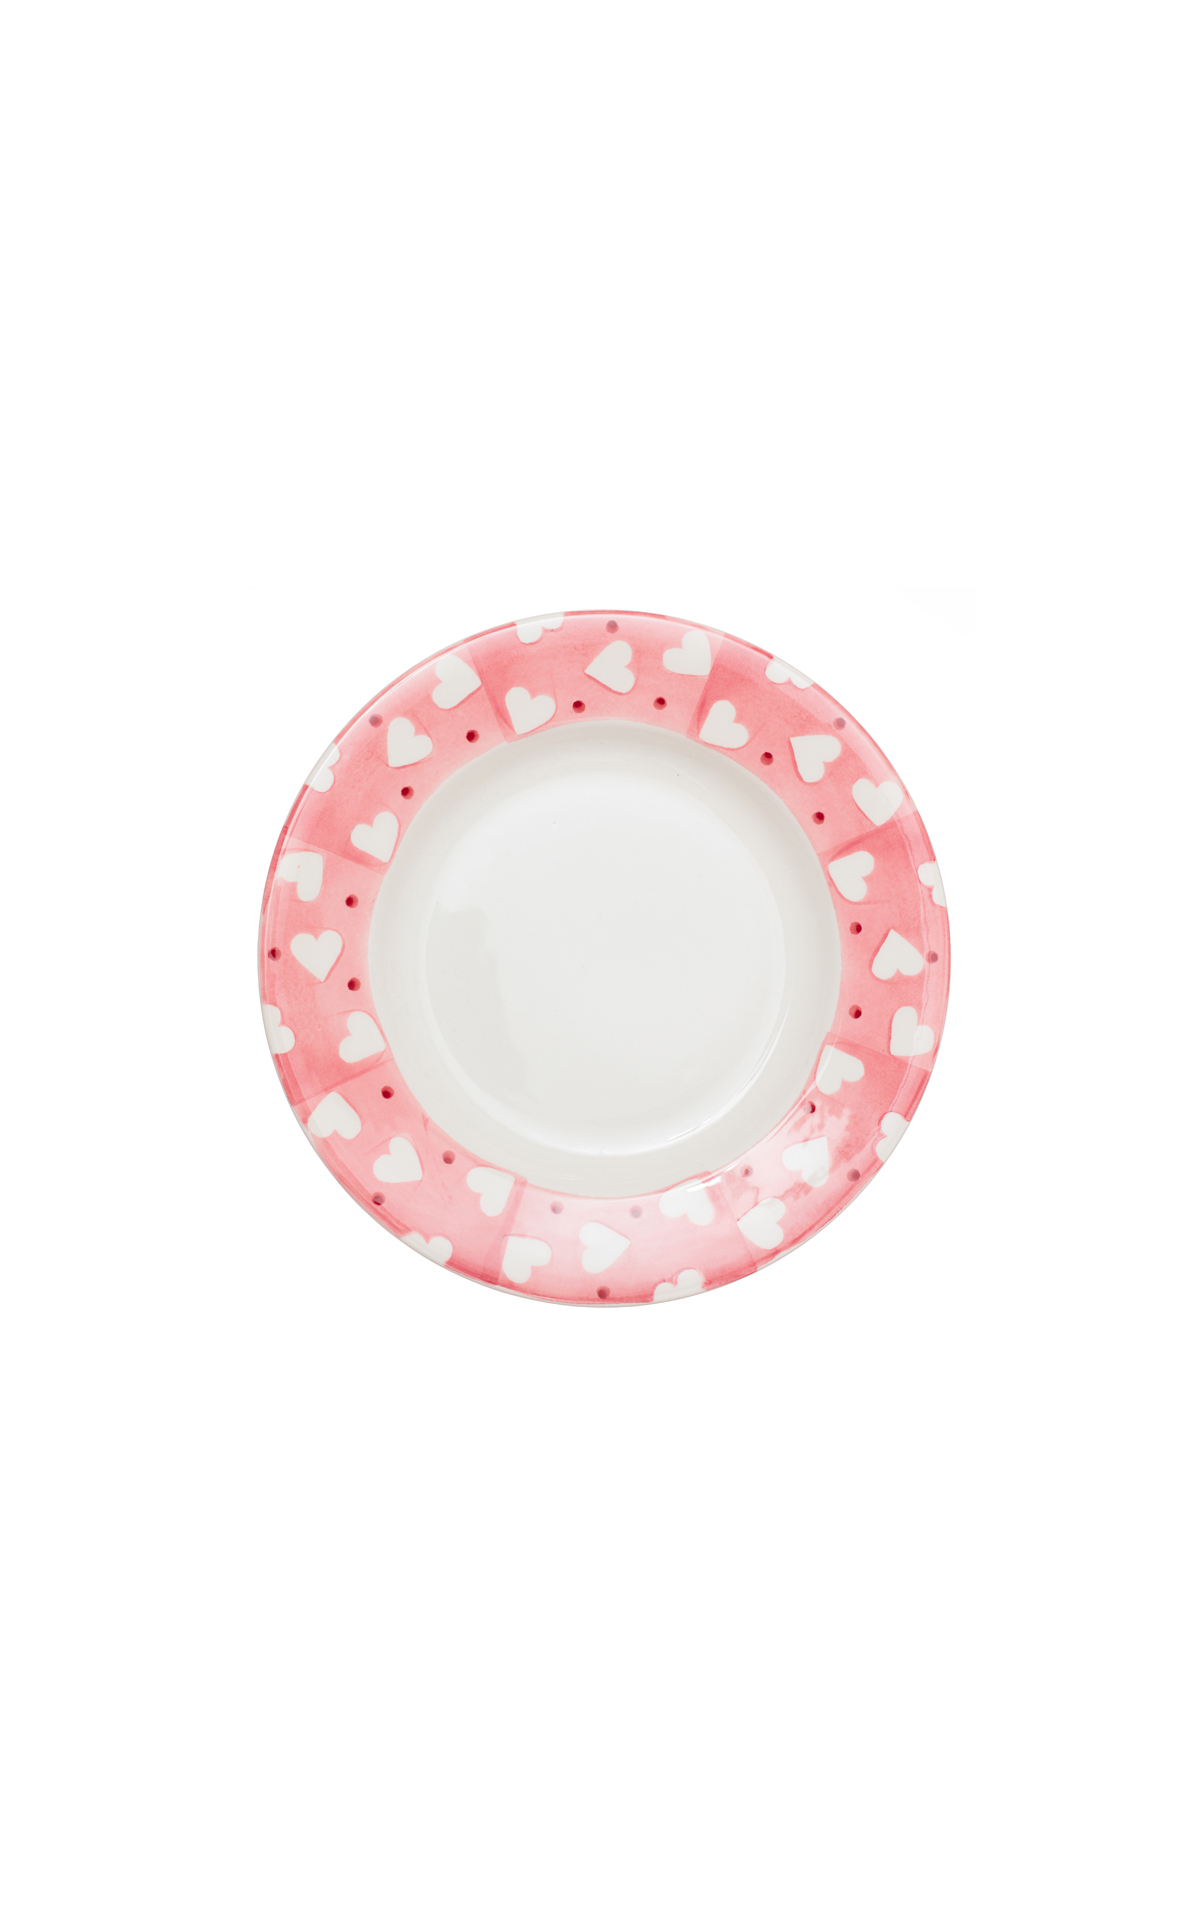 Emma Bridgewater Pink hearts and dots 8 1/2 inch plate from Bicester Village